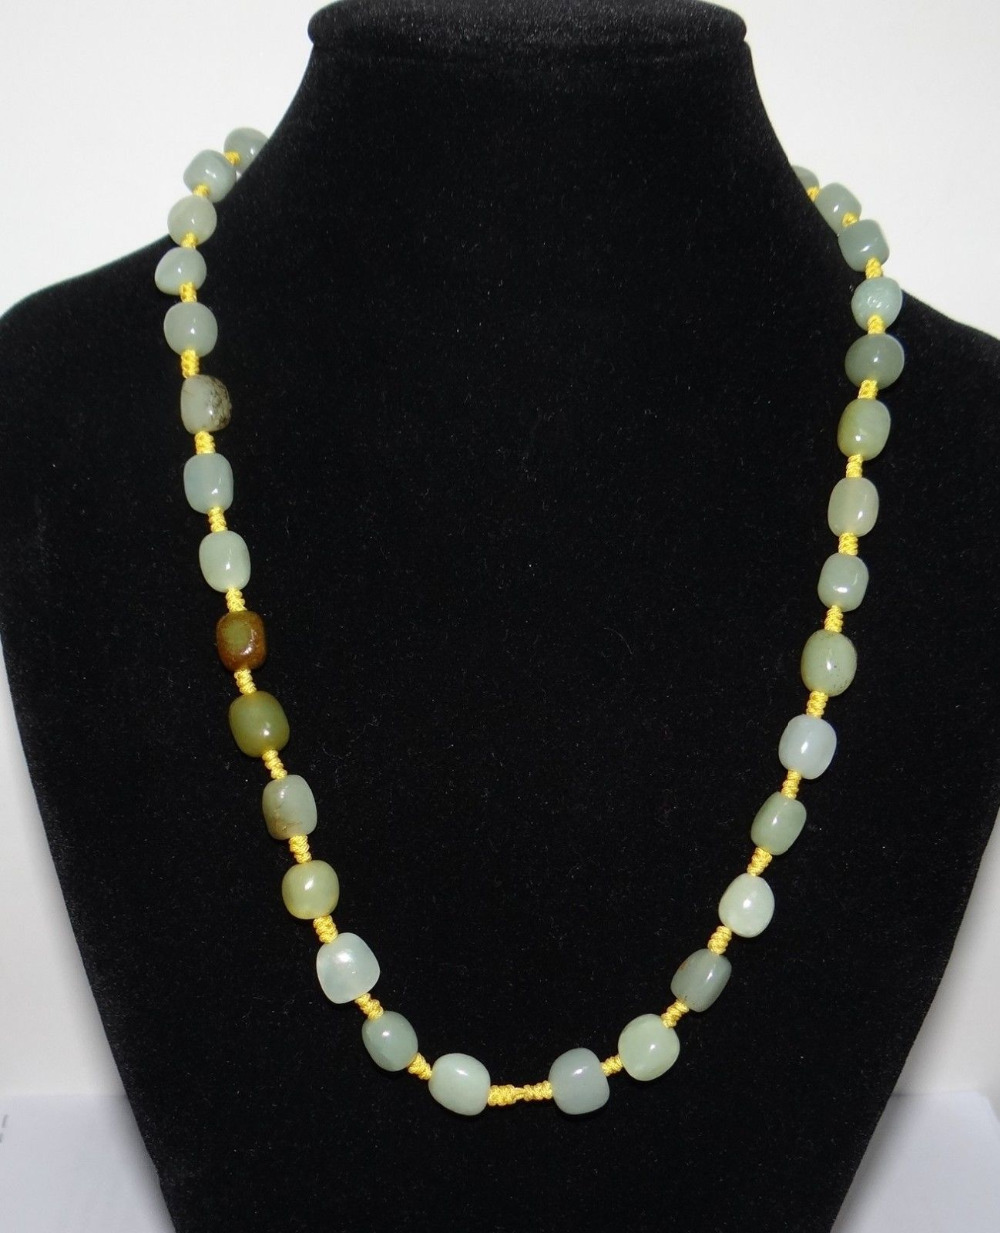 1723 China Nature Nephrite Hetian Jade Light Green Pearls Necklace Pendants(China (Mainland))